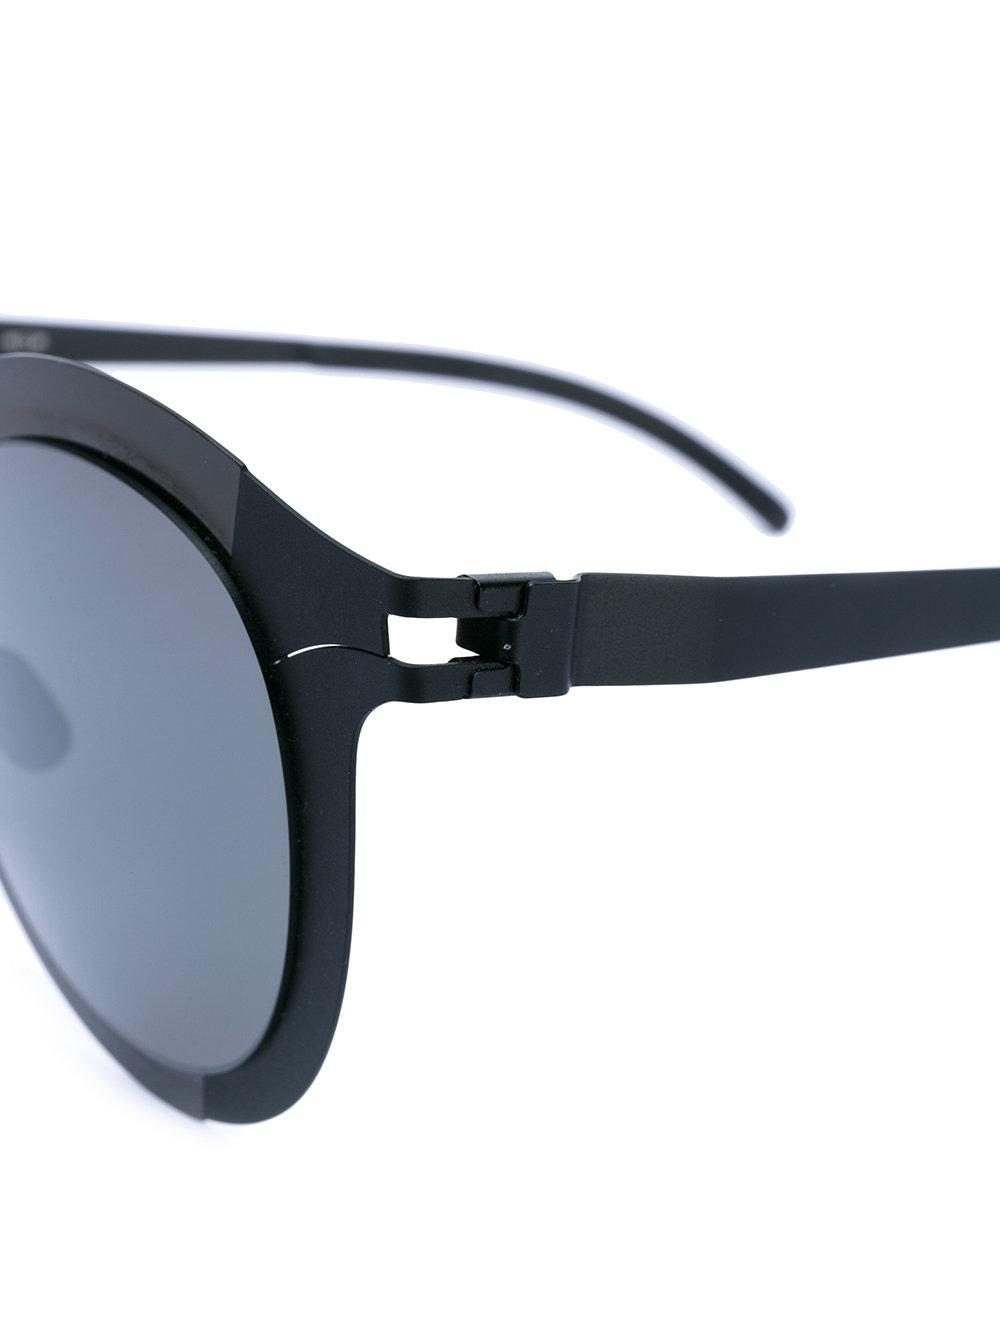 Mykita Studio 22 Shiny Round Sunglasses in Black